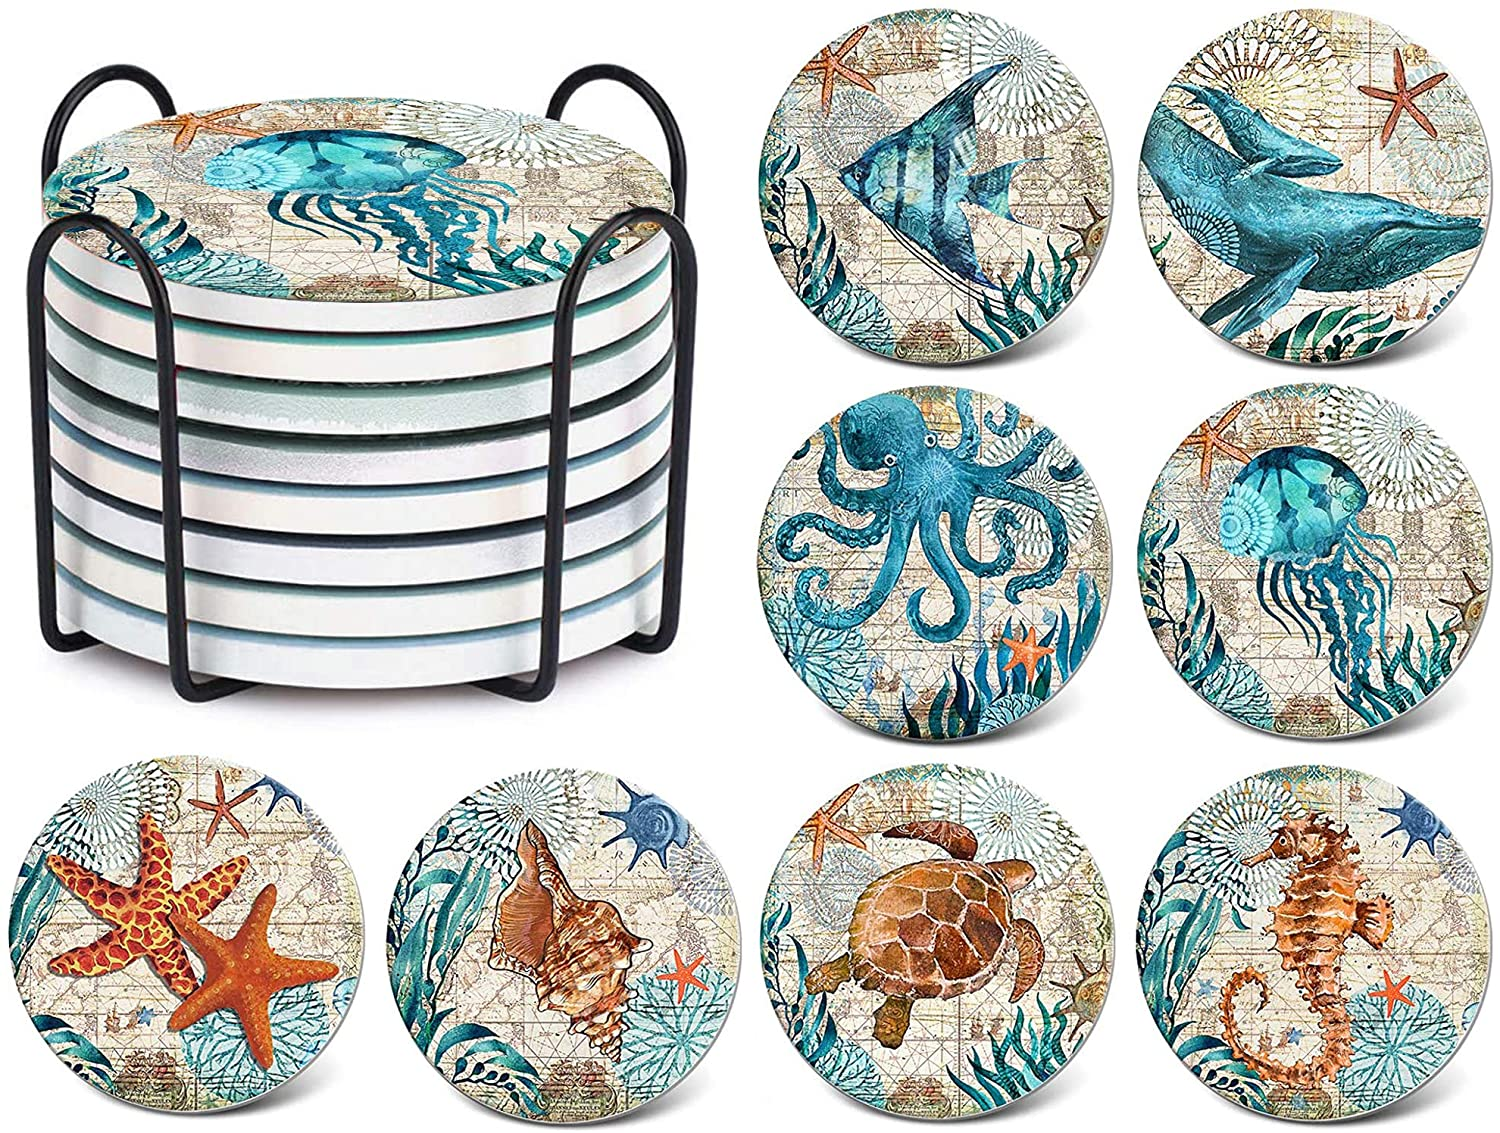 TEUVO Coasters for Drinks Cork Base Set of 8 with Holder, Sea Ocean Life Absorbent Coasters for Home, Cafe and Office, Housewarming Gift